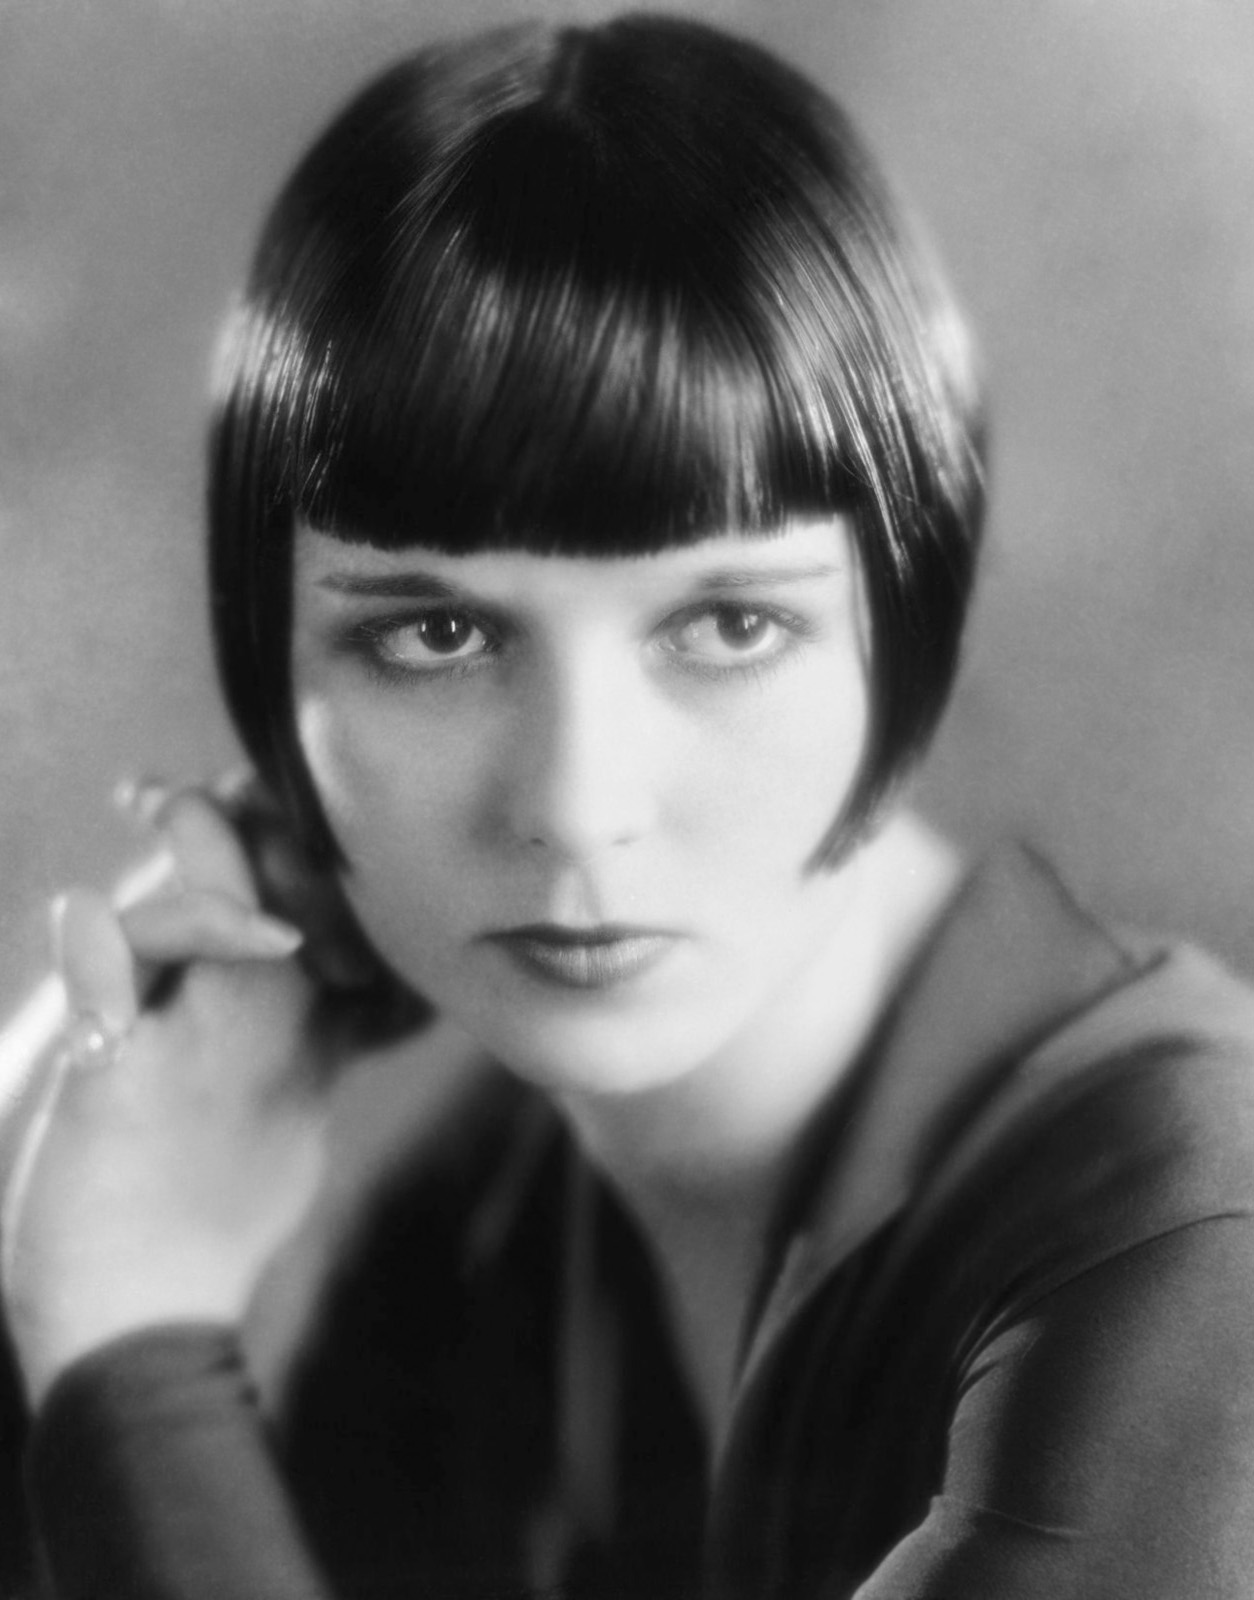 http://stabi02.unblog.fr/files/2010/07/louisebrooks3.jpg